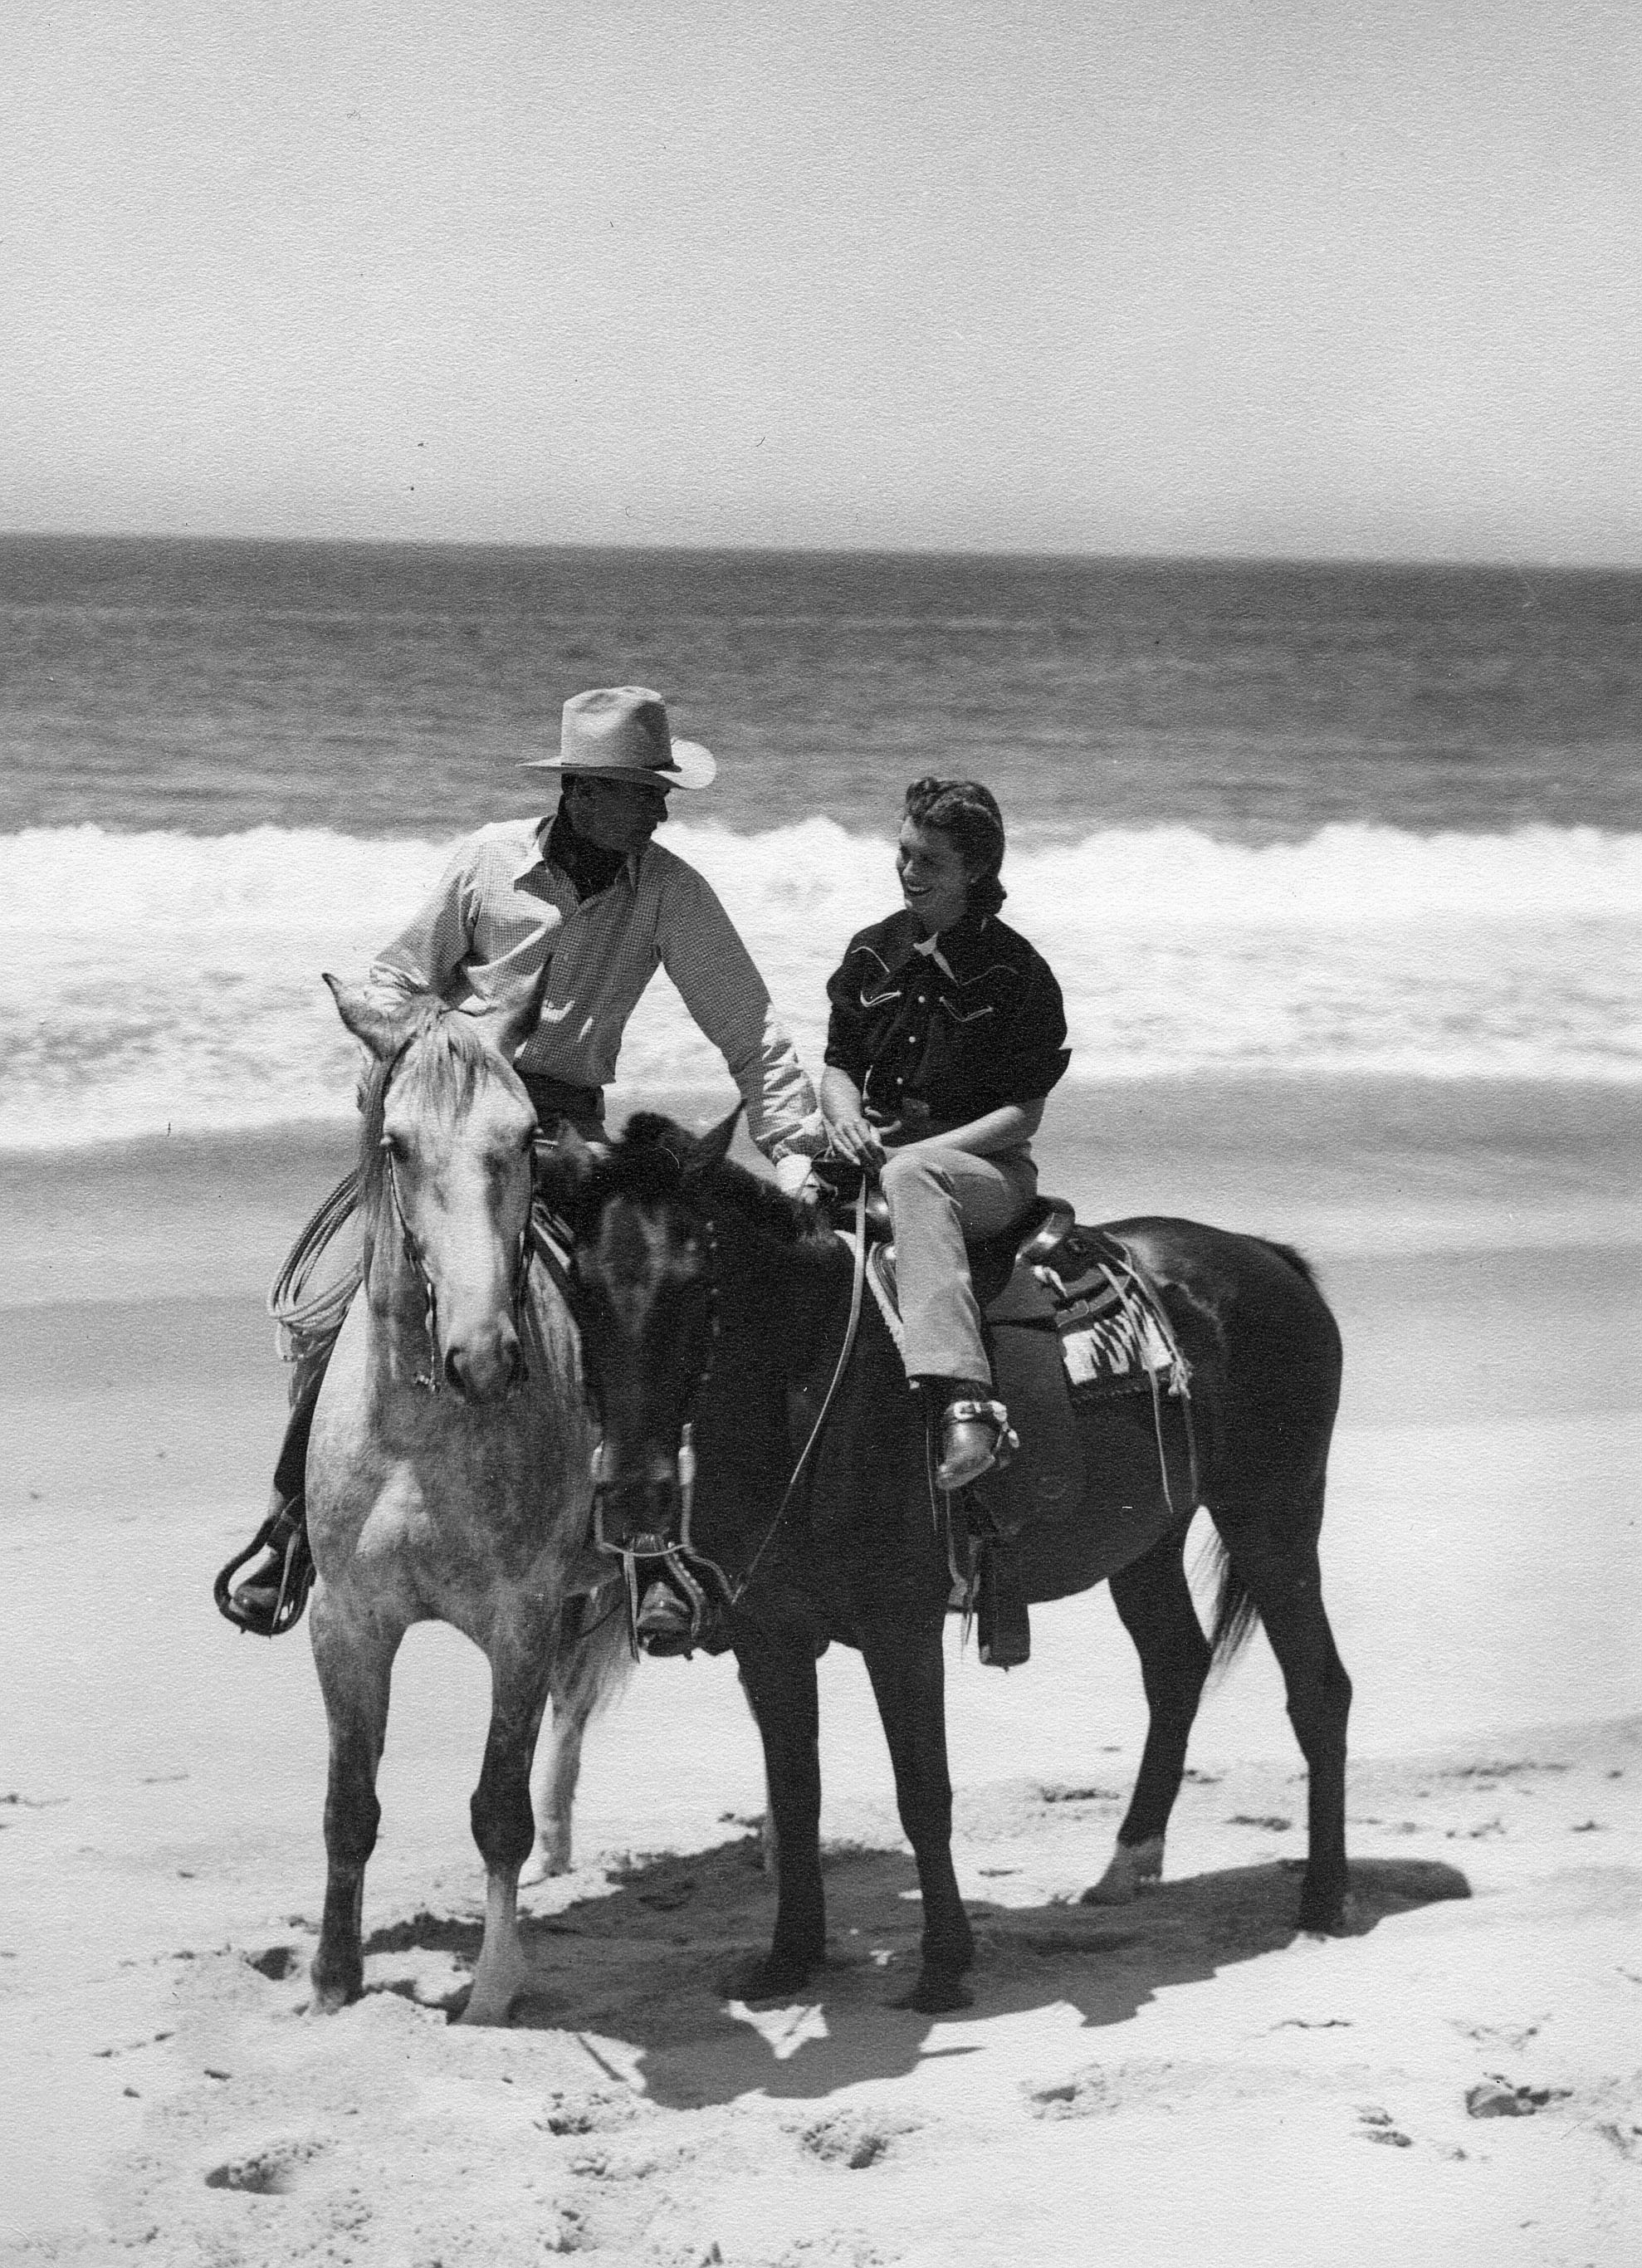 - A favorite weekend getaway - riding on the beaches near Malibu. They kept the horses up in the hills and it was a welcome gallop on the sand at the edge of the surf. It looks like my mother was enjoying the special attention of her husband.